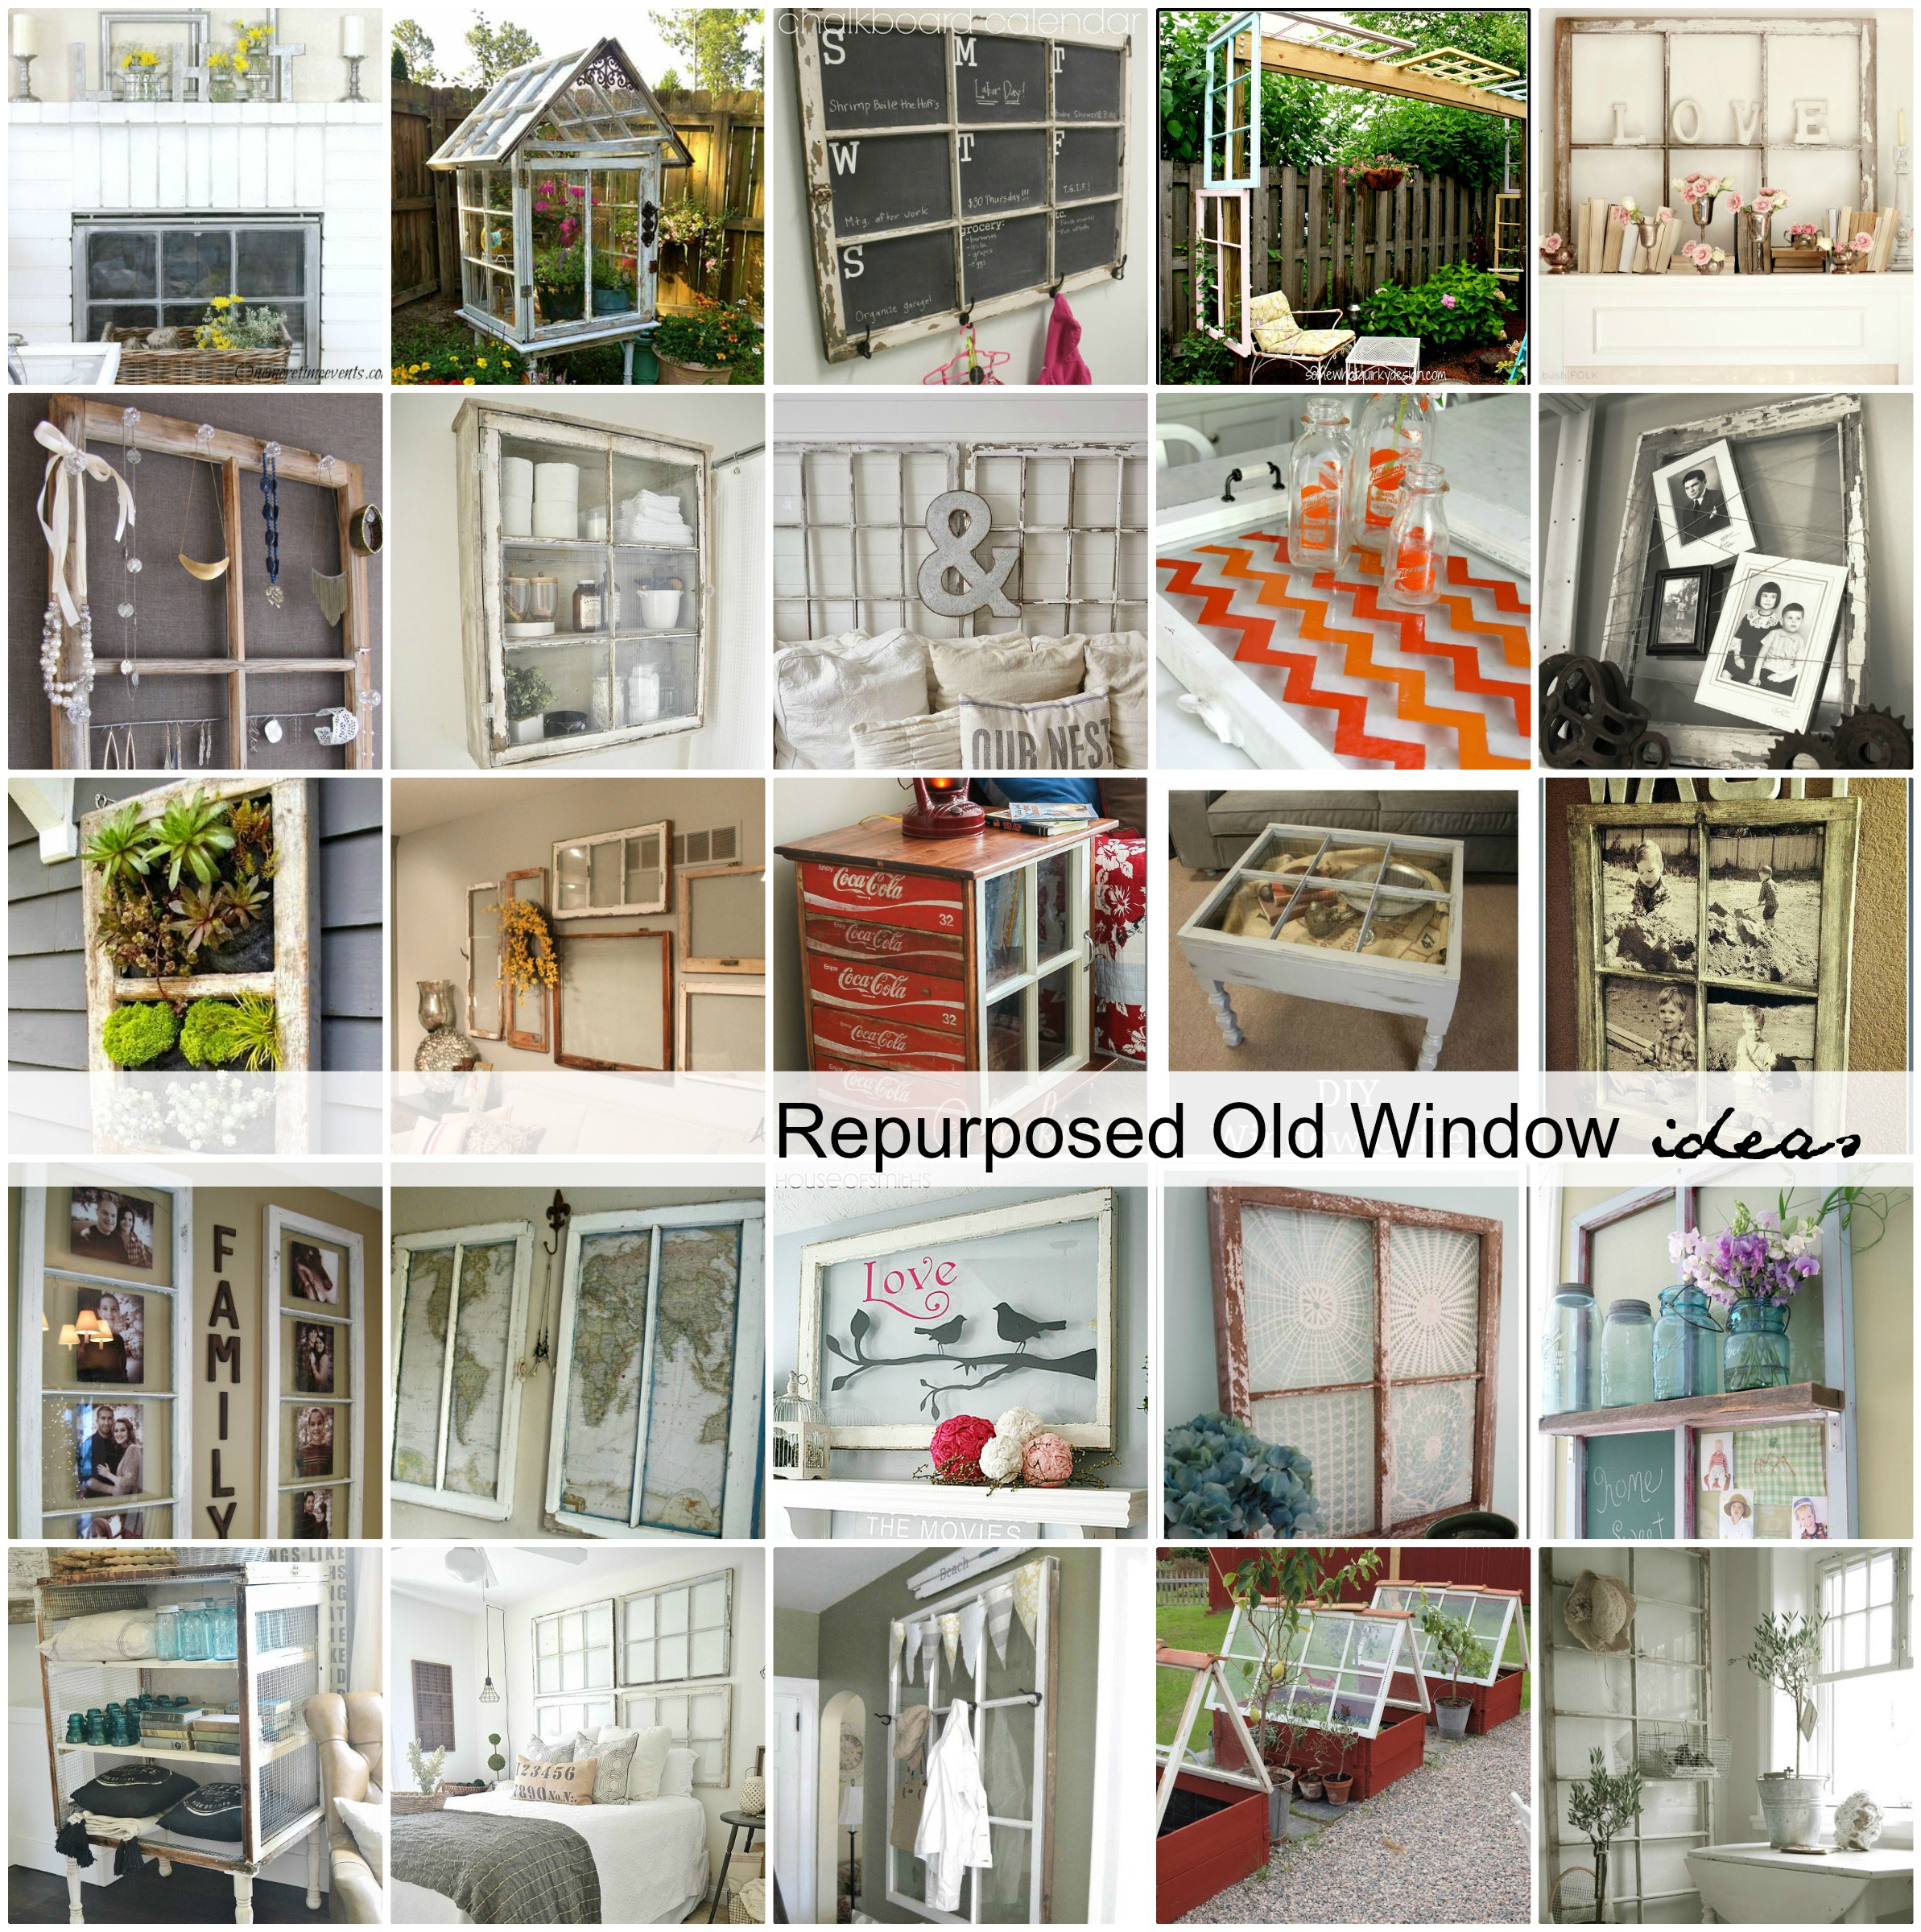 Repurposed-Window-Ideas-1